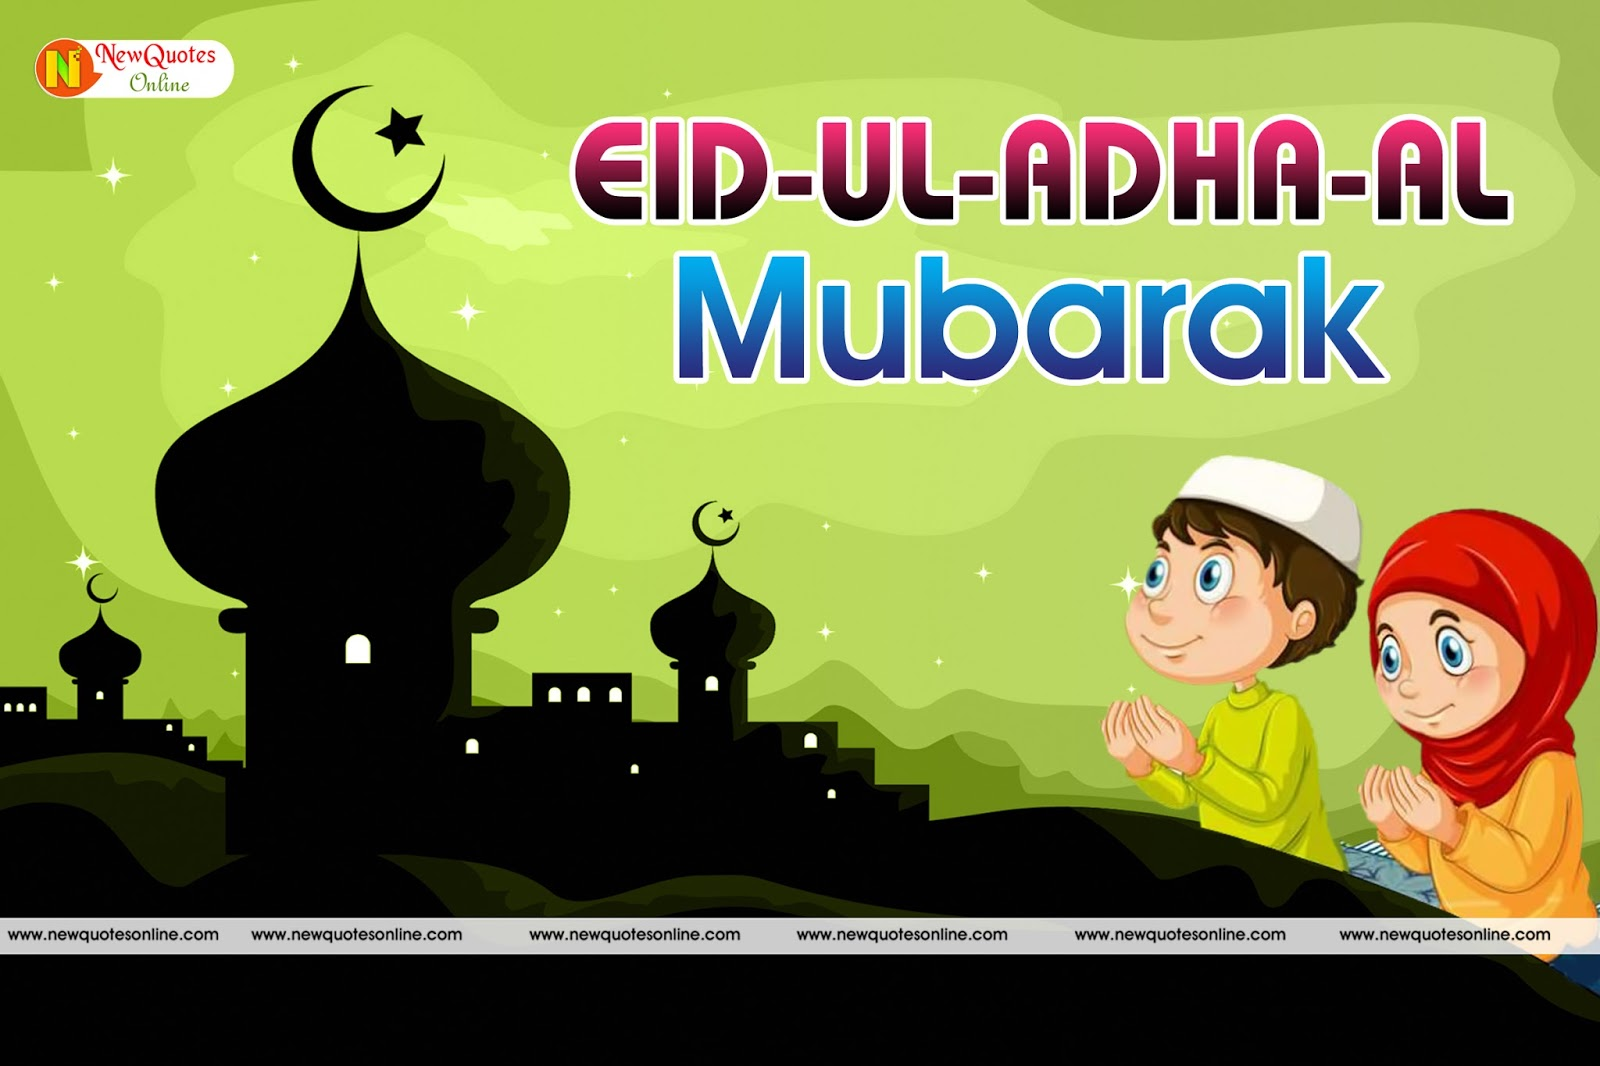 A very happy eid ul adha mubarak bakrid wishes images greetings happy bakrid festival hd images wishing greetings pictures kristyandbryce Choice Image